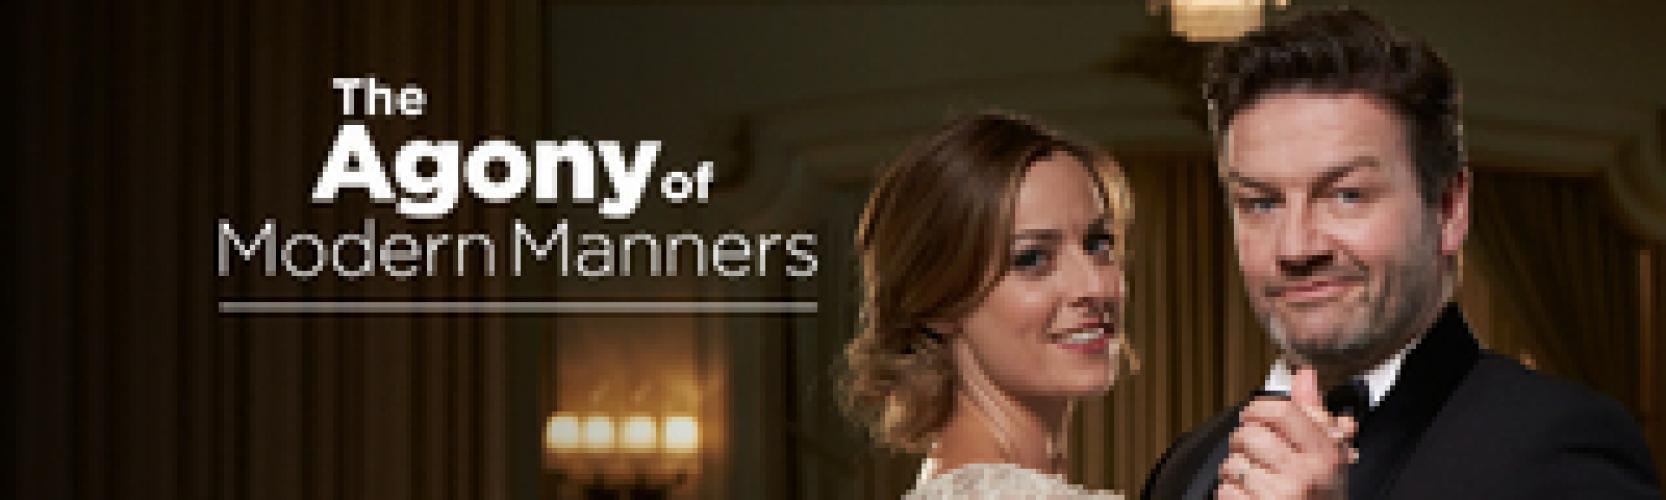 The Agony of Modern Manners next episode air date poster